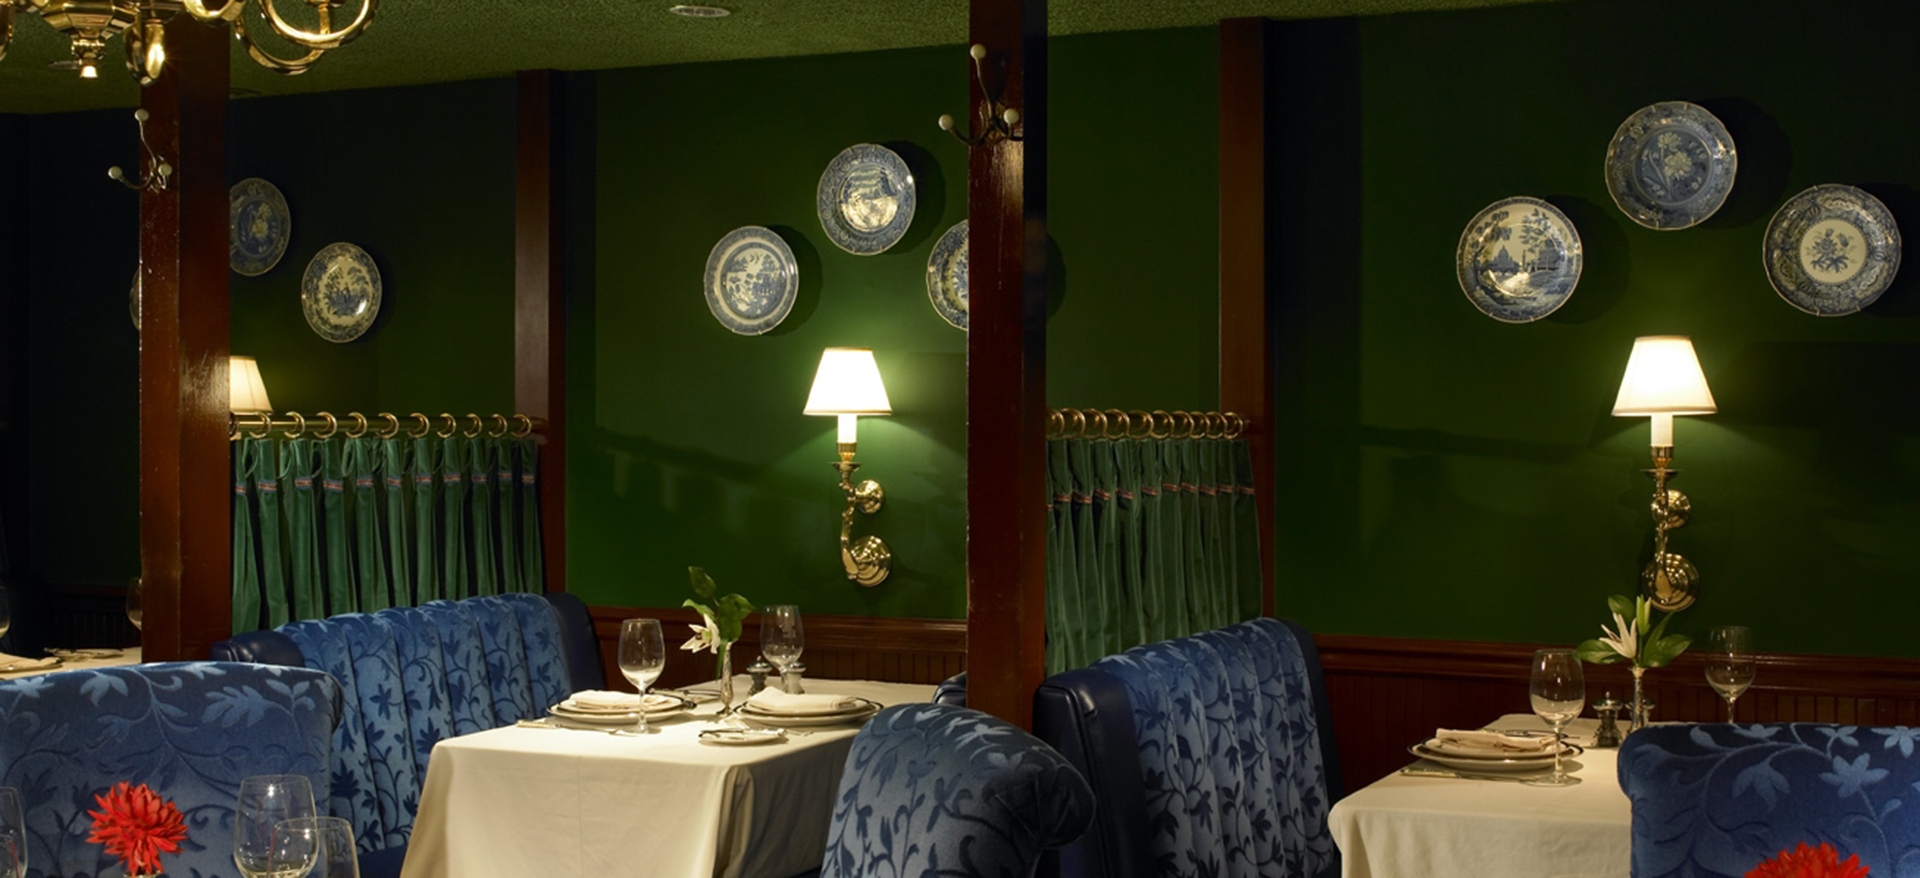 Pacific Dining Car - LA Astor Room